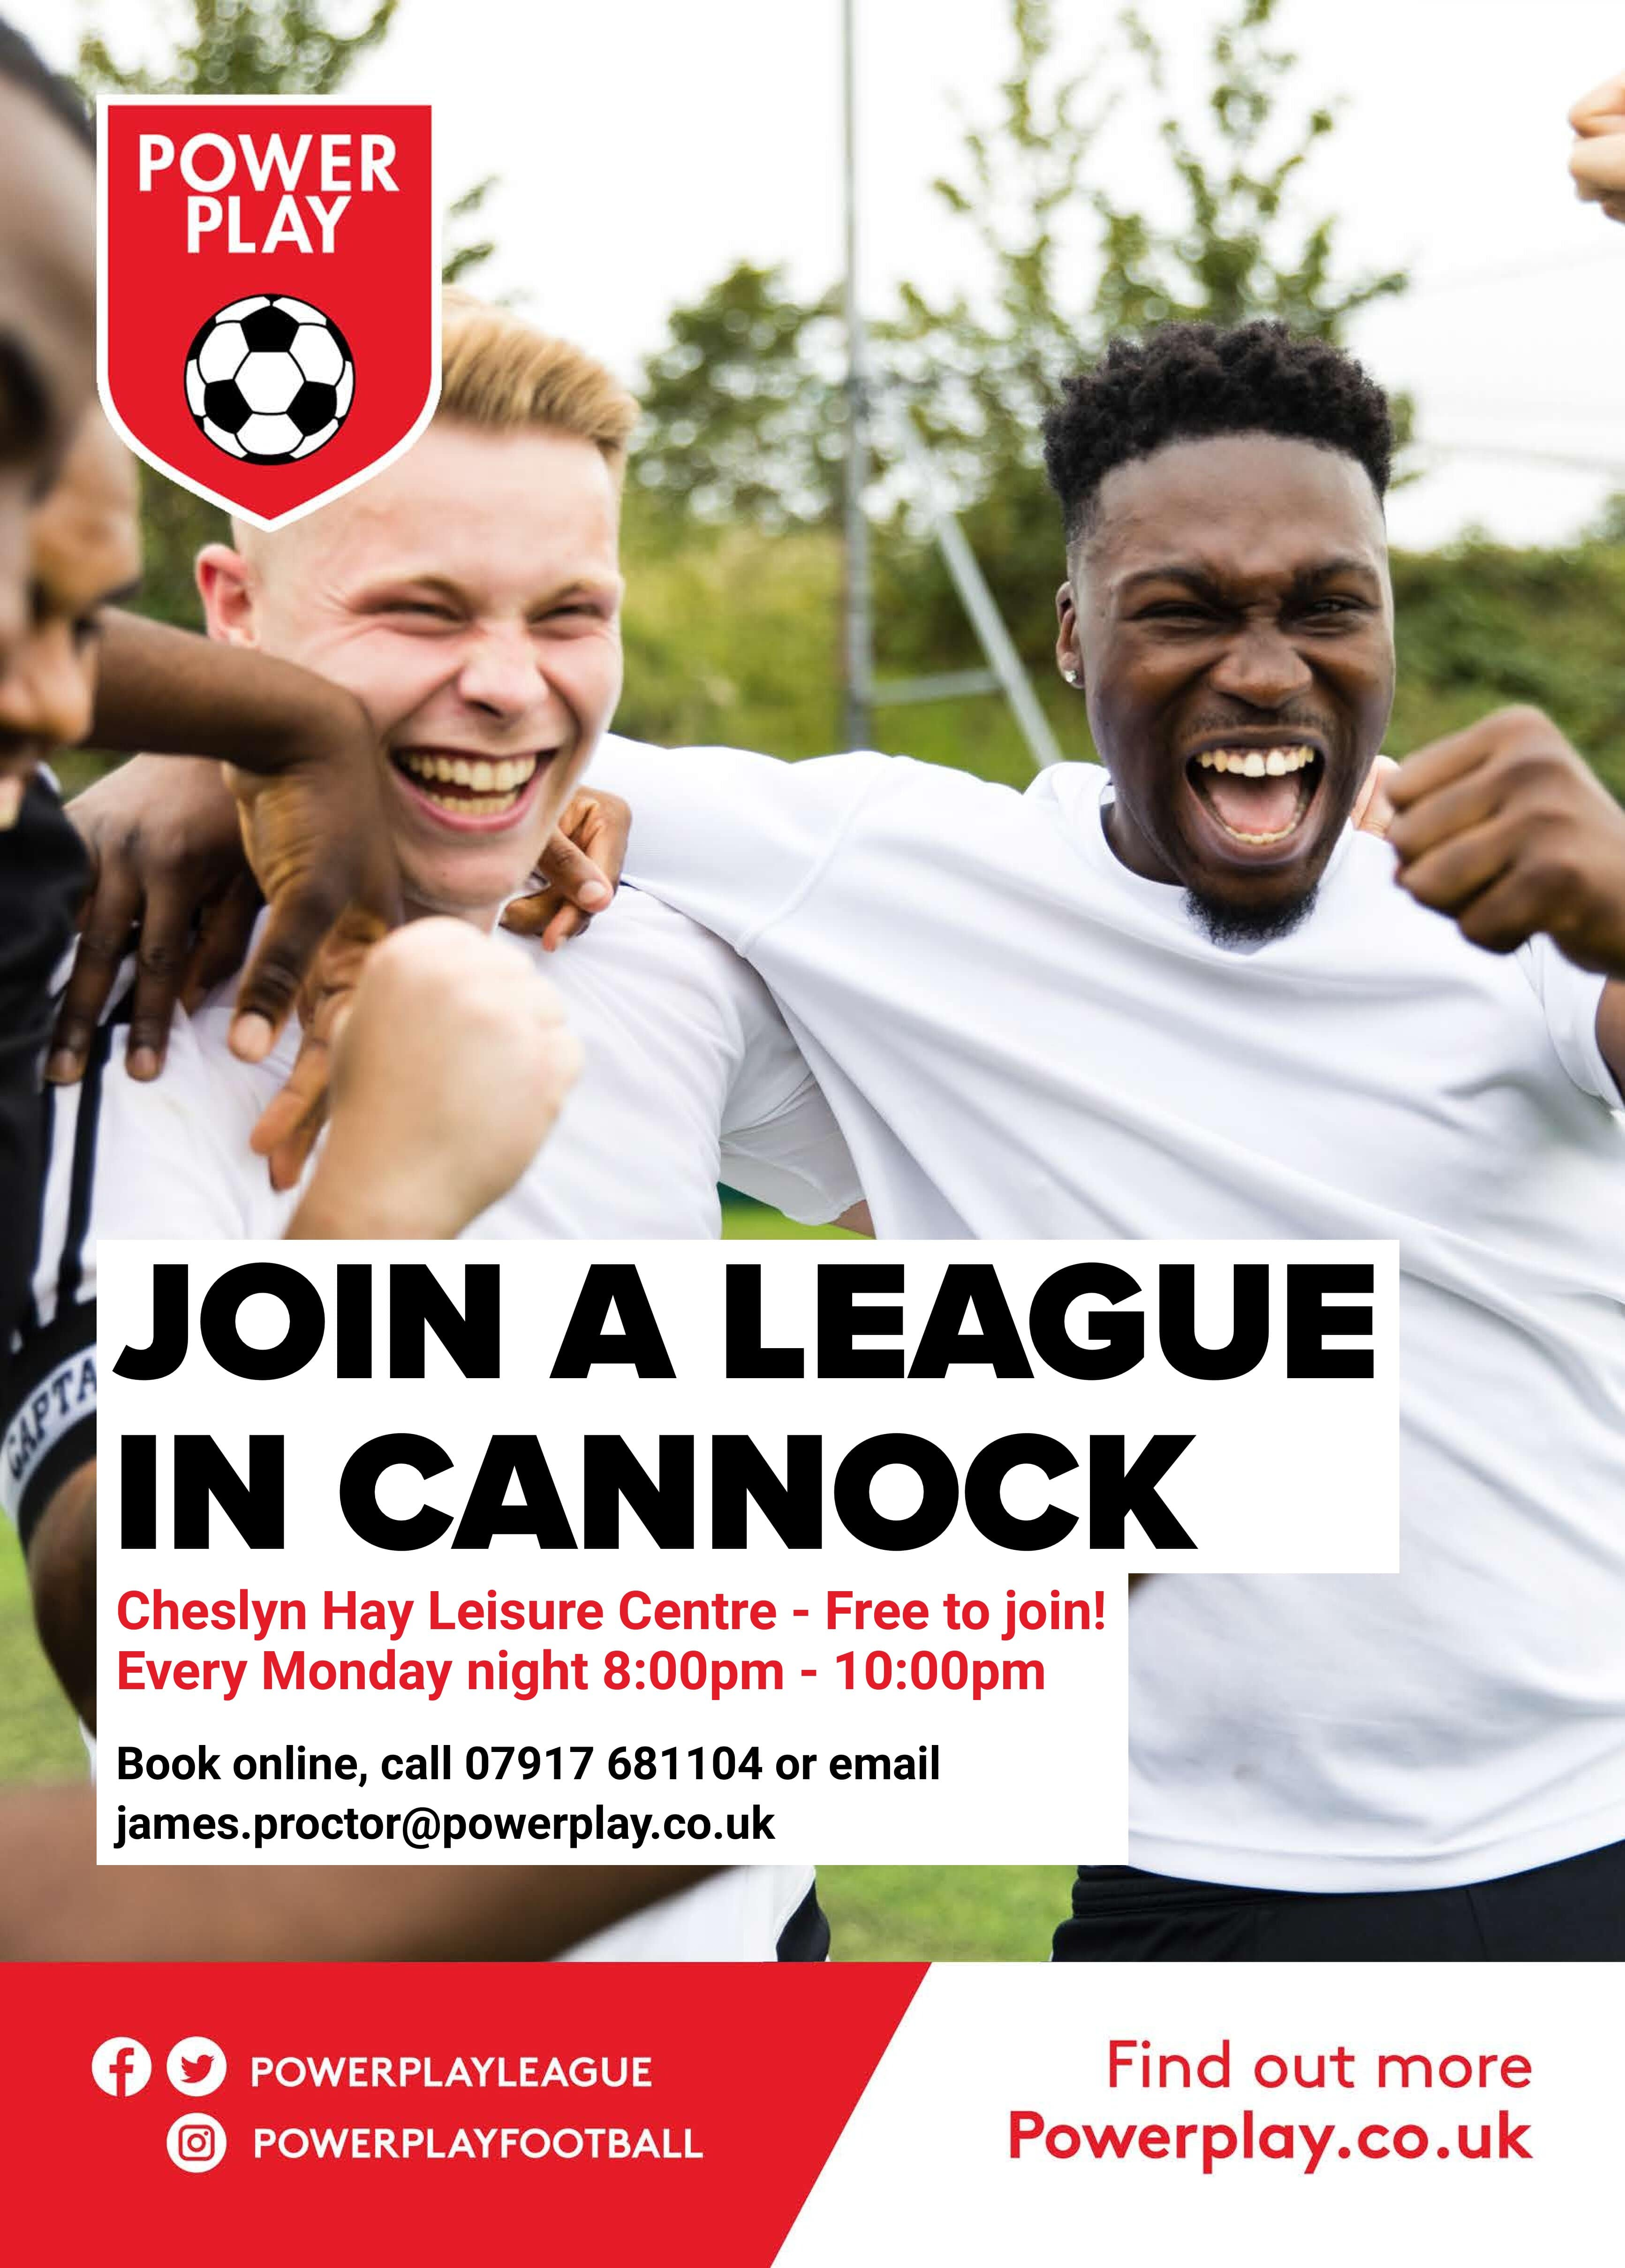 Join a league in Cannock